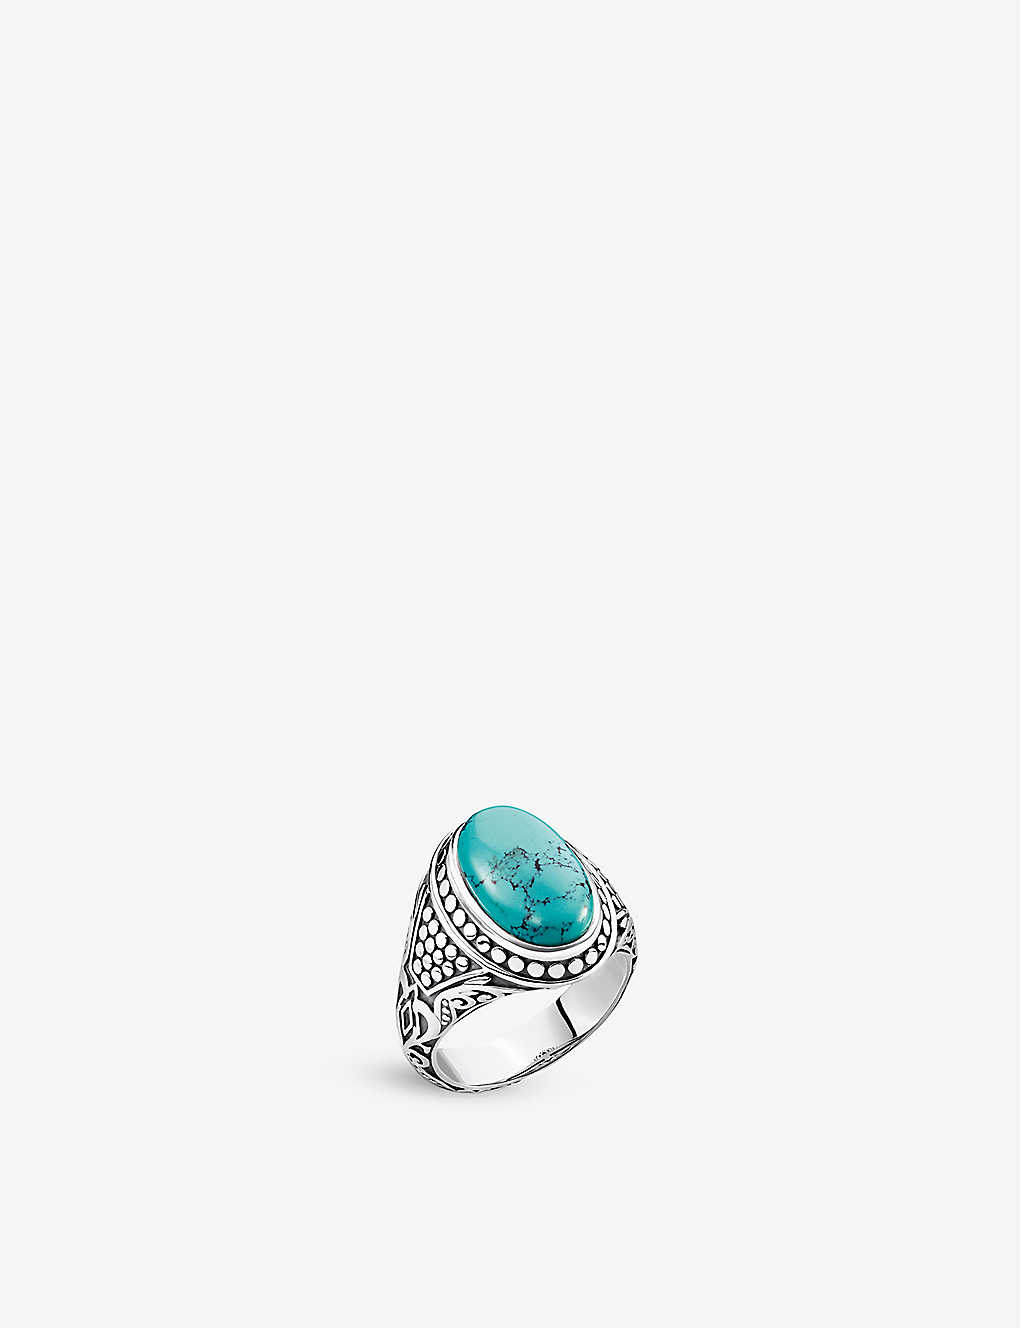 THOMAS SABO: Arizona sterling silver and faux-turquoise stone signet ring